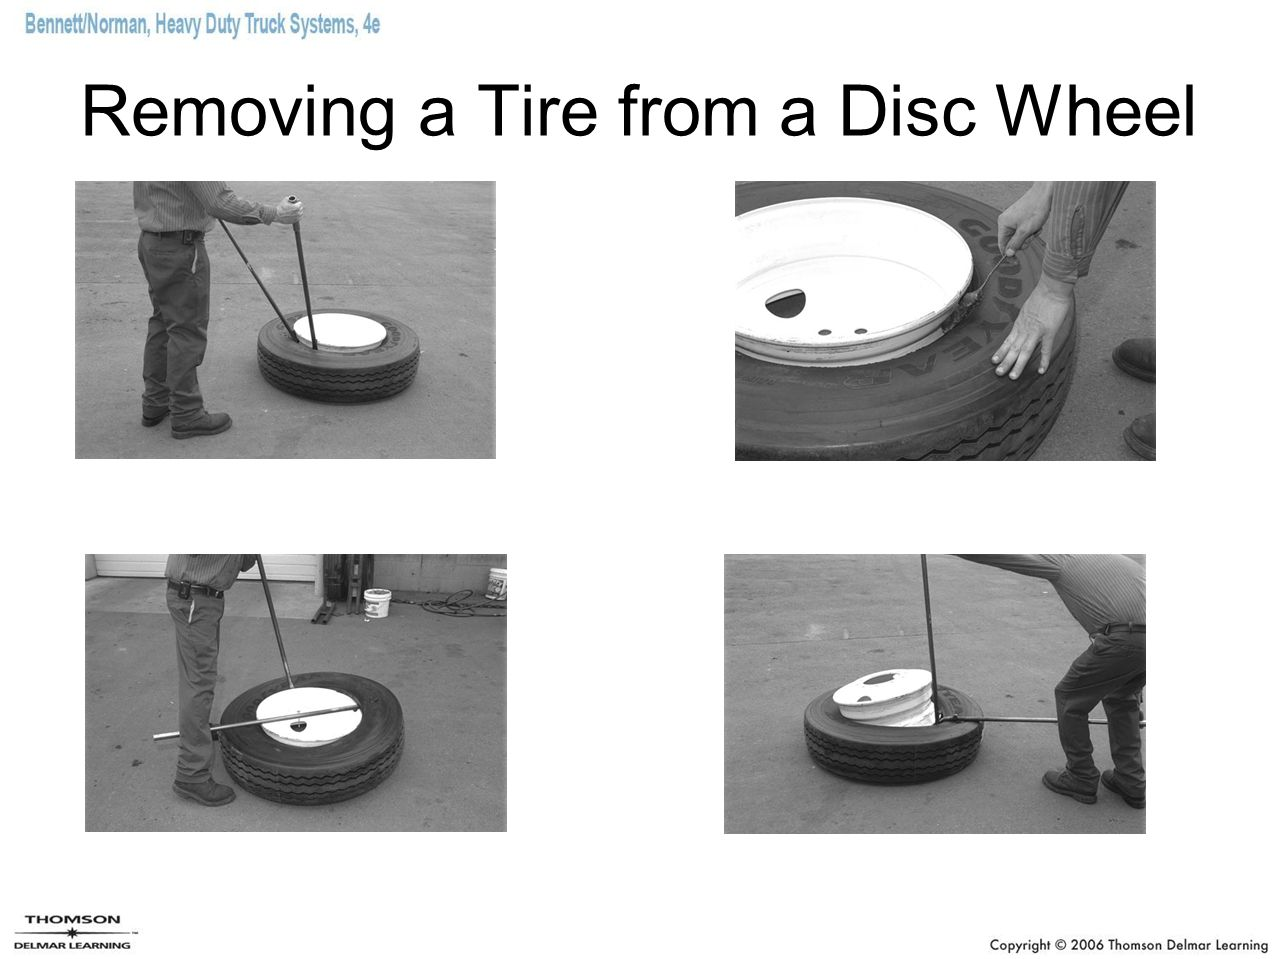 Removing a Tire from a Disc Wheel